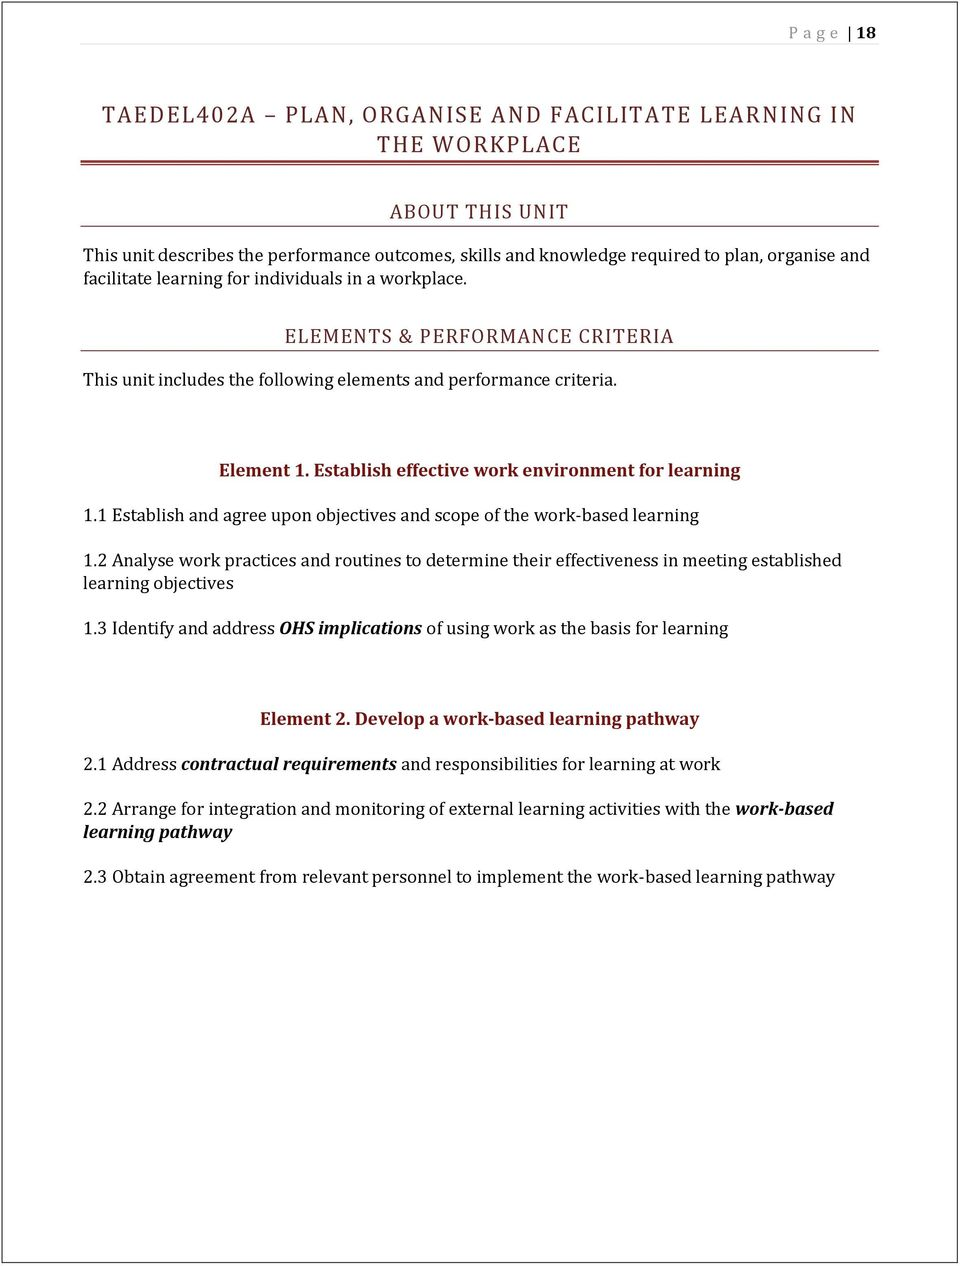 Establish effective work environment for learning 1.1 Establish and agree upon objectives and scope of the work-based learning 1.